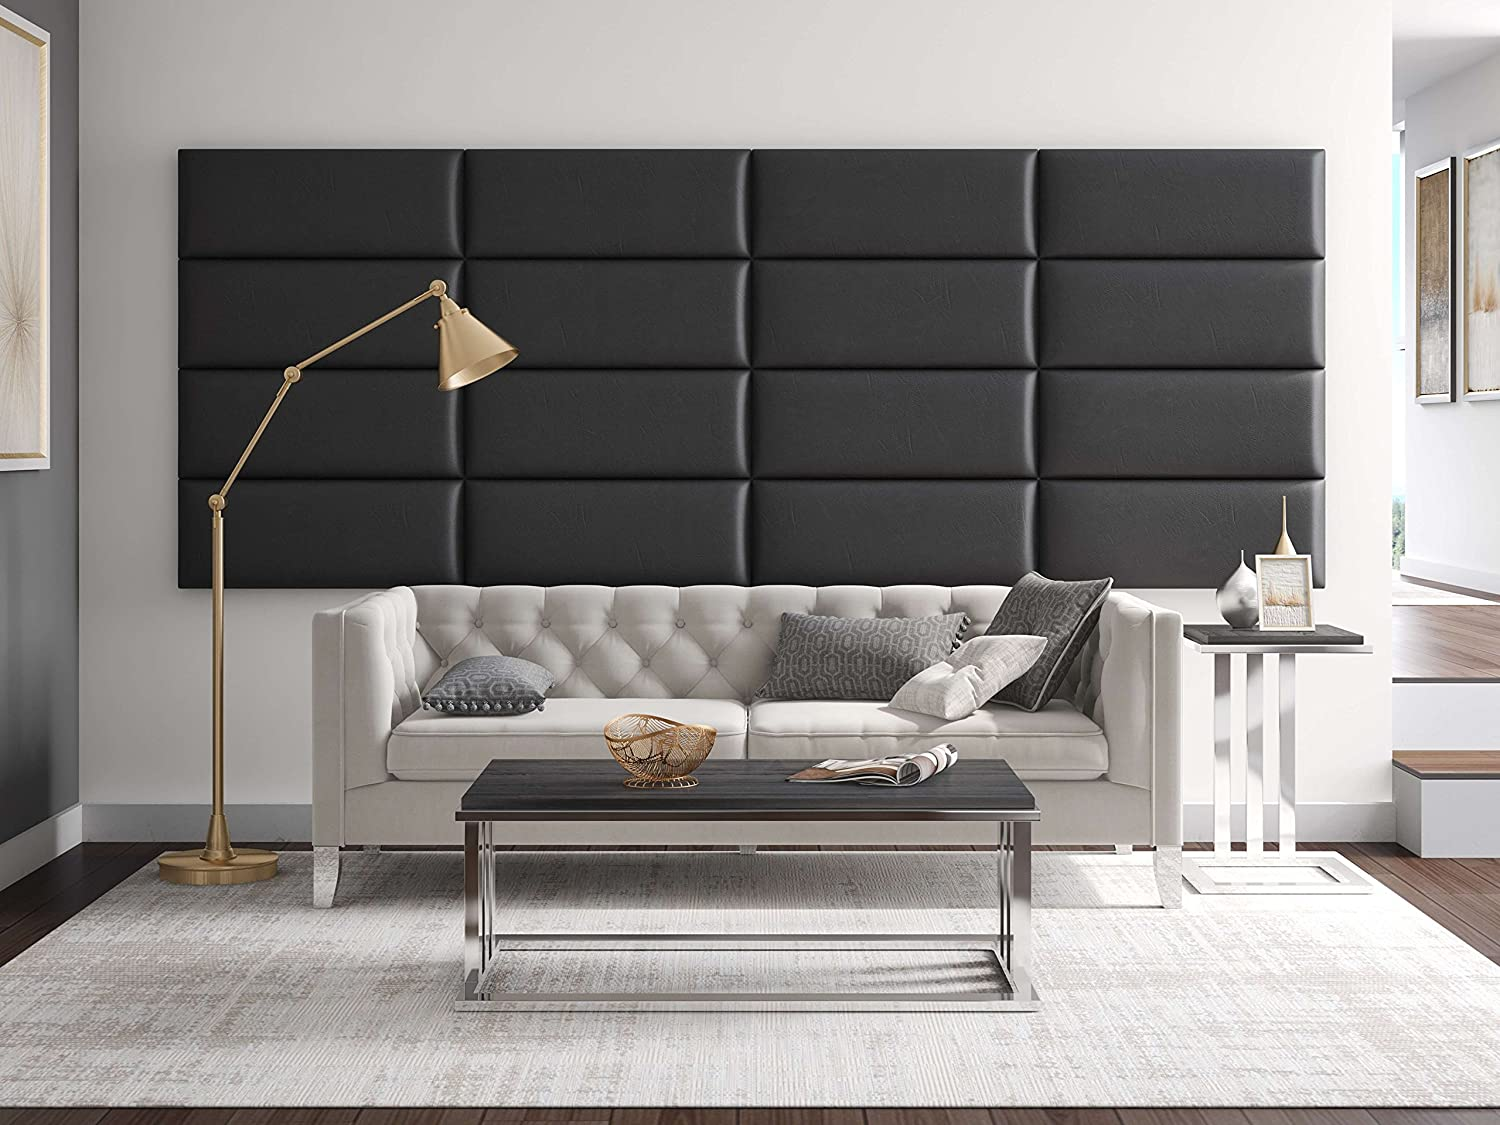 Textured 3D Wall Panels for TV Walls Easy Application Pack of 4 Sofa Background Wall D/écor Vintage Leather Black Coal- 30 Wide x 11.5 Height VANT Decorative Wall Panels